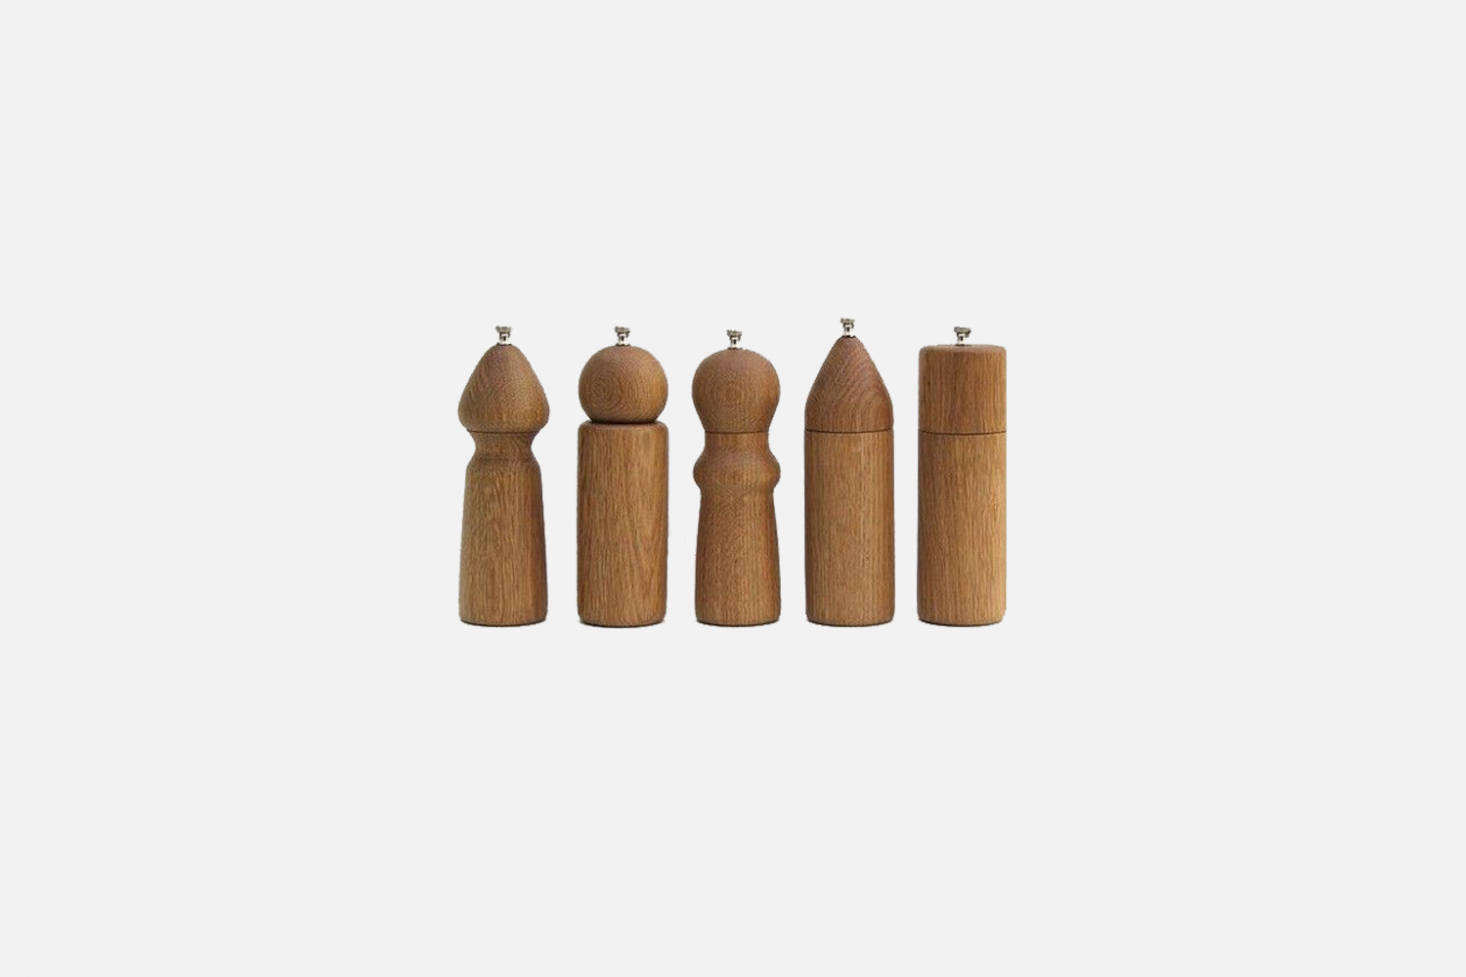 Handmade by De Jong & Co., in LA, these elegant White Oak Salt and Pepper Grinders are available in a variety of shapes and sizes; $150 each from Nickey Kehoe.